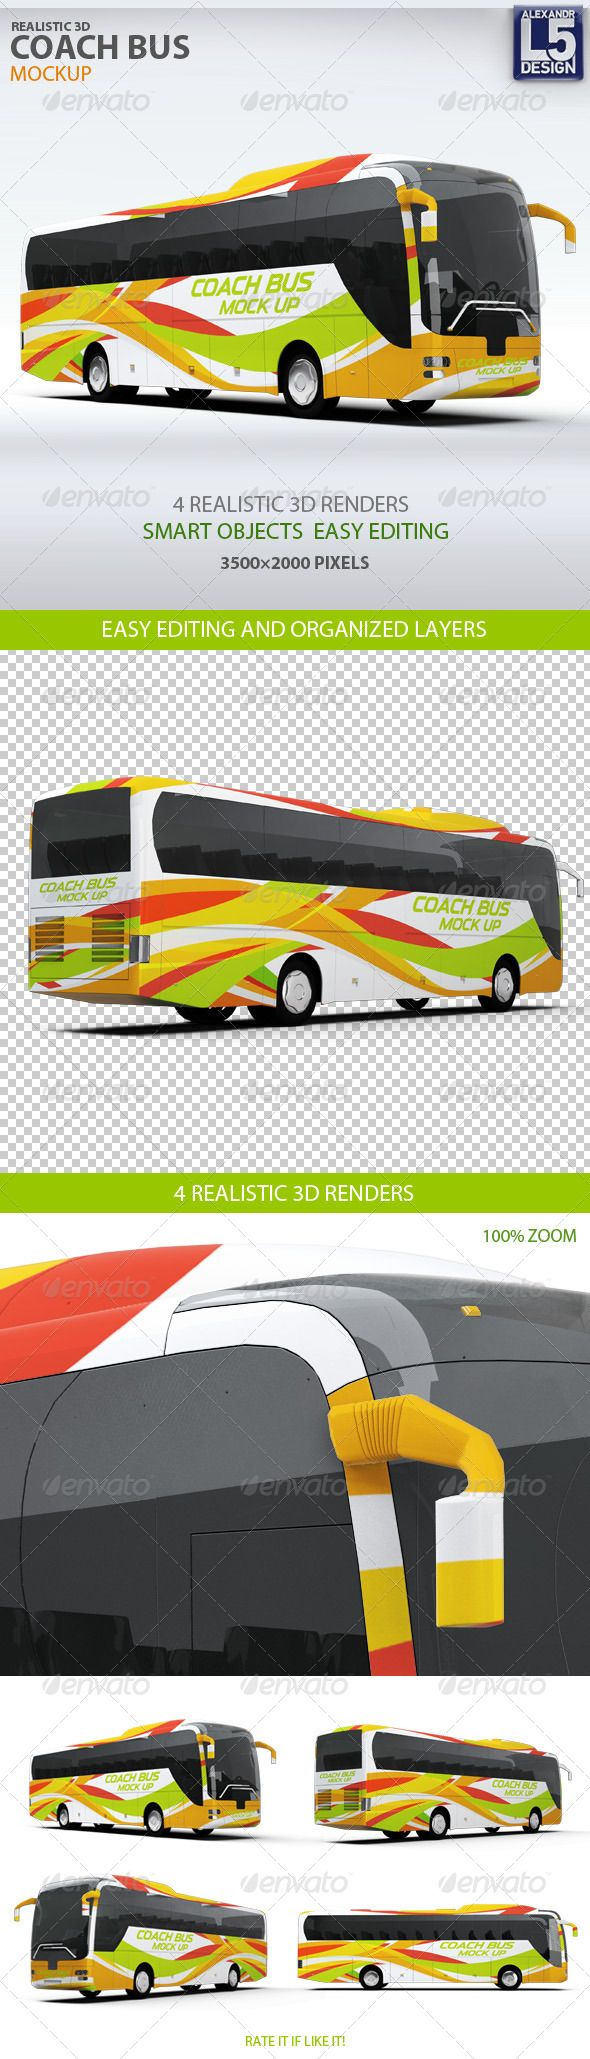 Coach Bus mockup — Photoshop PSD #transportation #mobile • Available here → https://graphicriver.net/item/coach-bus-mockup/8171980?ref=pxcr